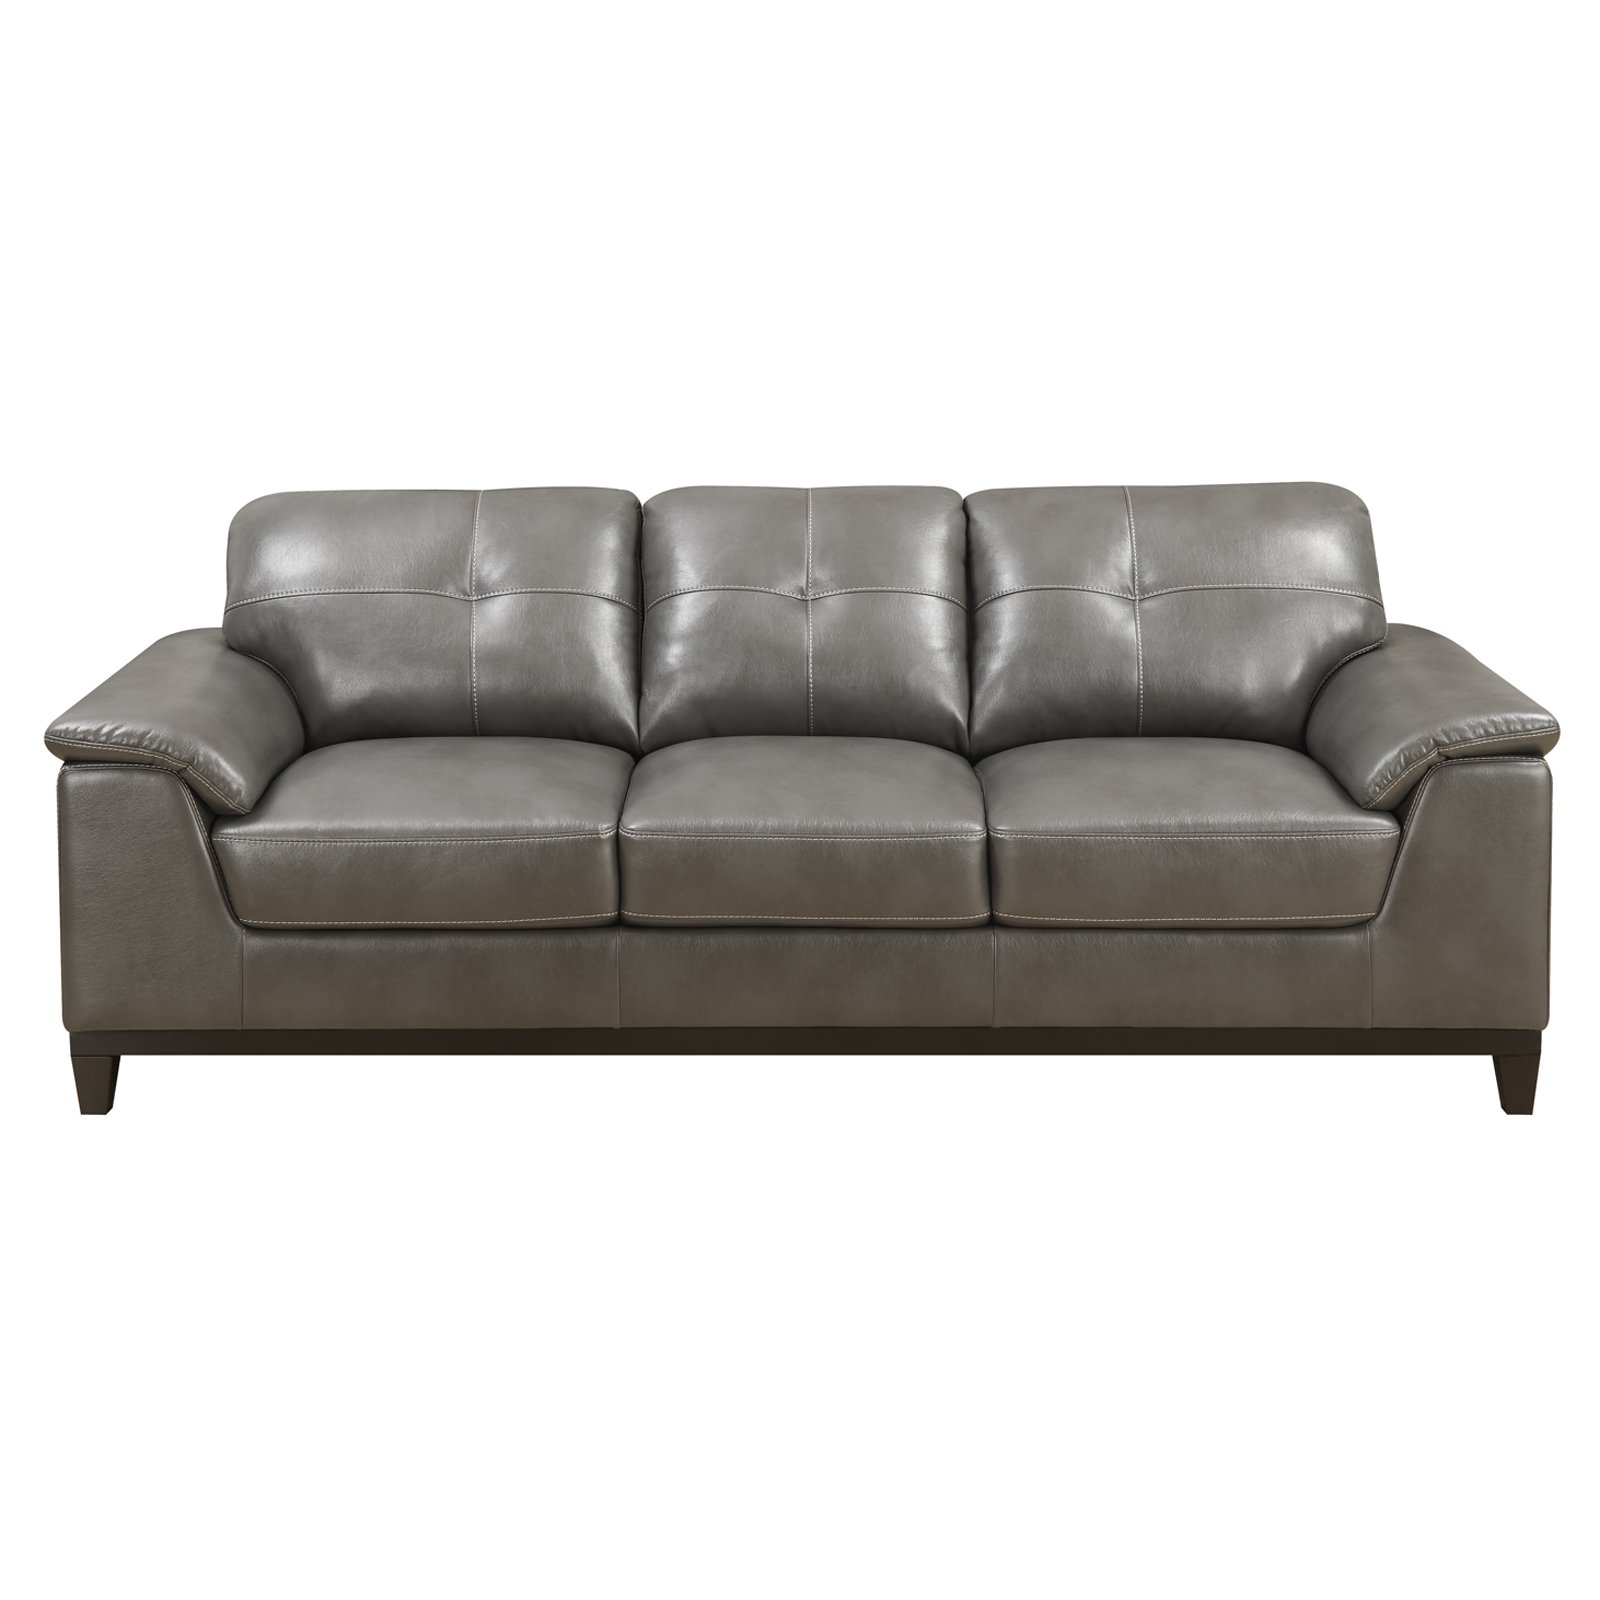 Emerald Home Marquis Faux Leather Sofa   Gray